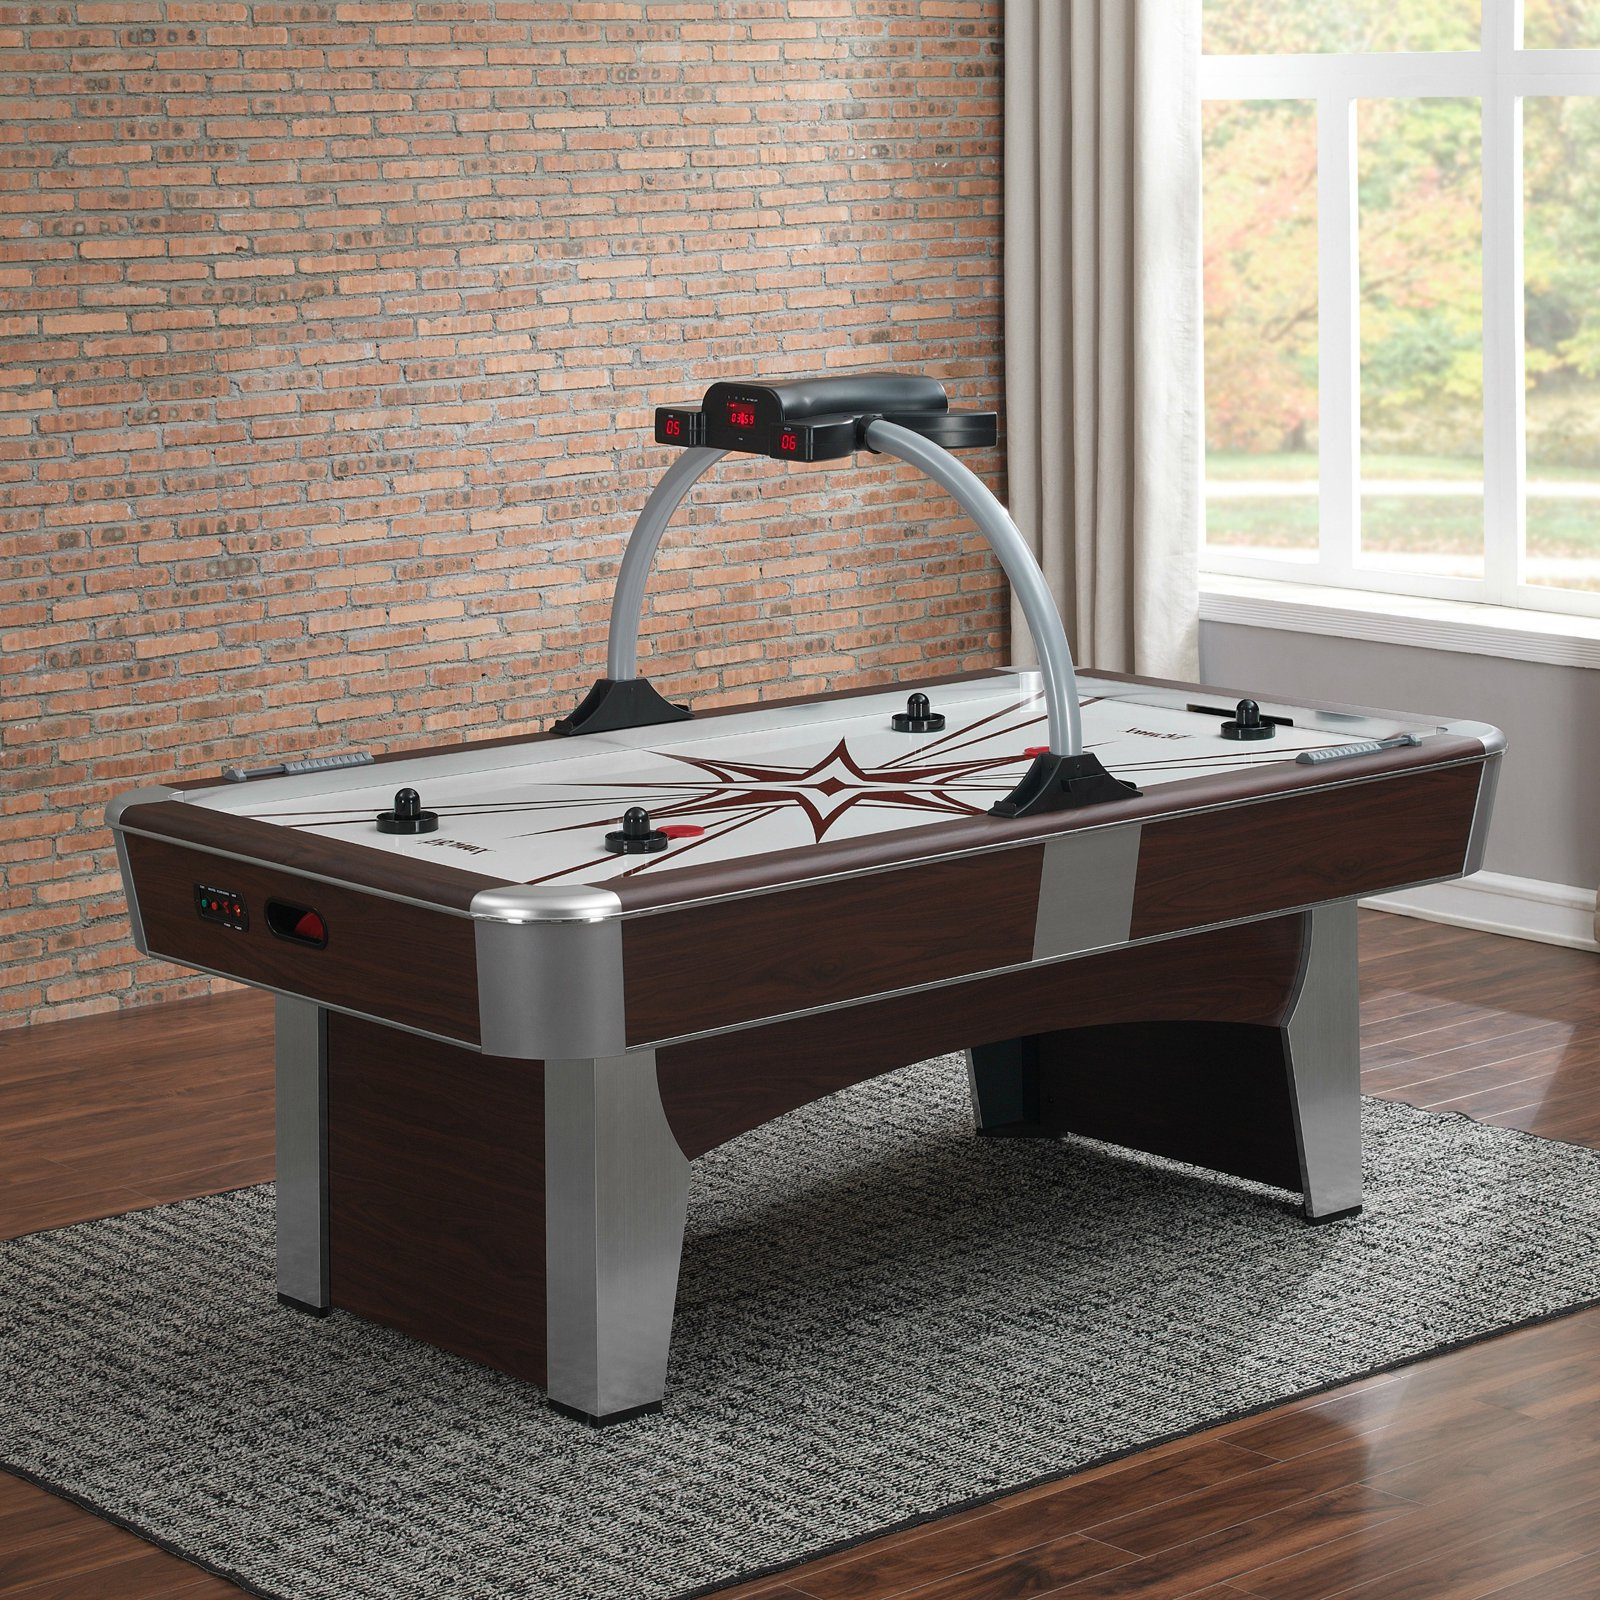 American Heritage 7 ft. Monarch Air Hockey Table